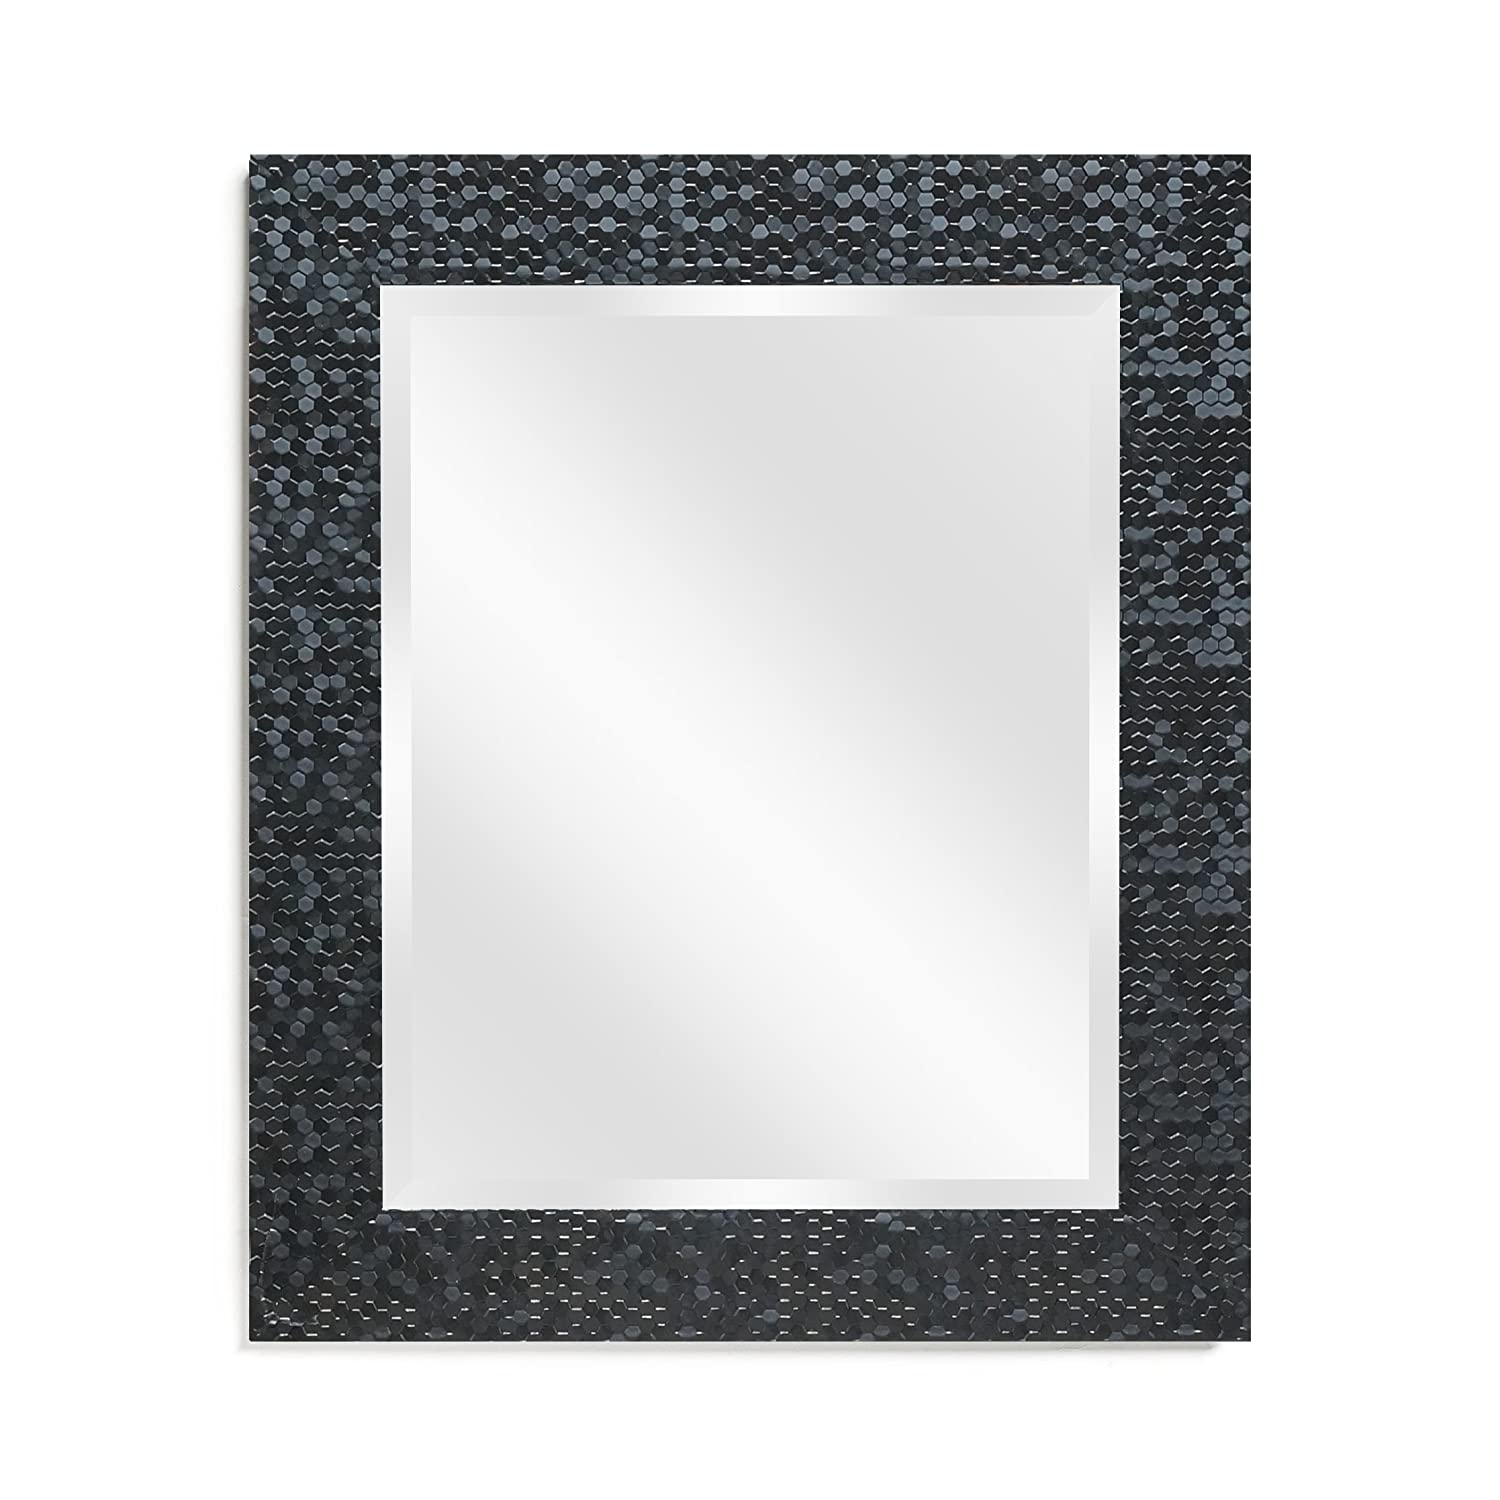 Wall Beveled Mirror Framed - Bedroom or Bathroom Rectangular frame Hangs Horizontal & Vertical By EcoHome (16X20, Silver)